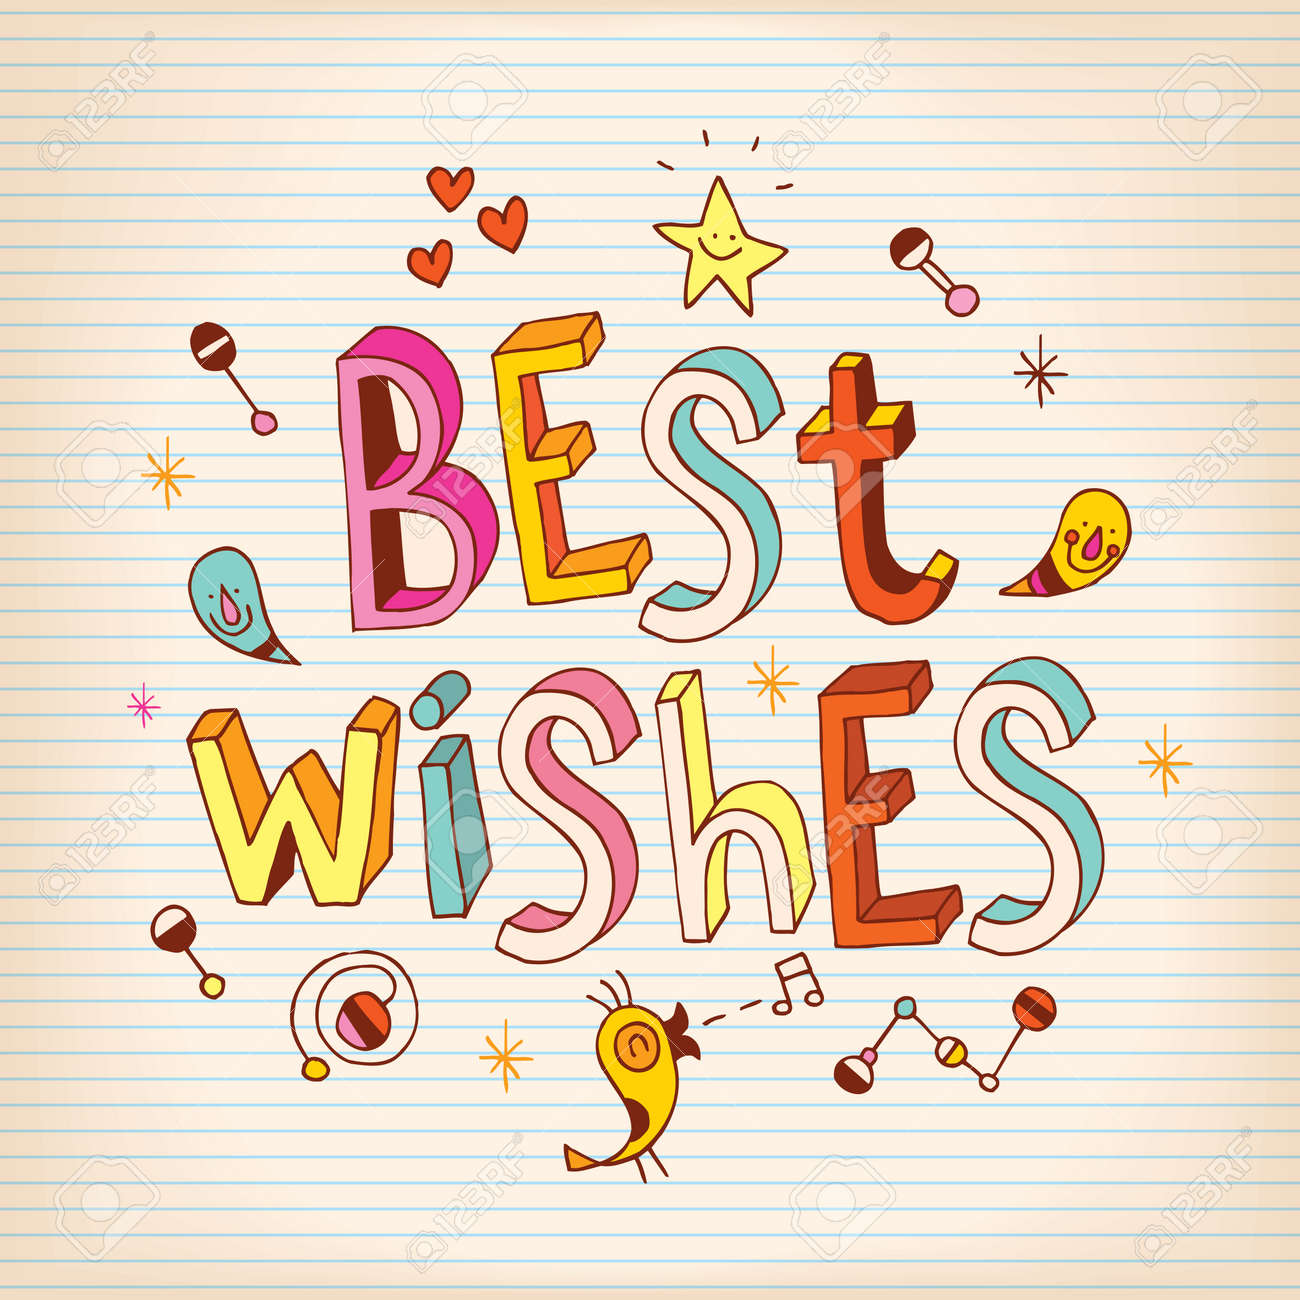 Best wishes lettering design greeting card royalty free cliparts best wishes lettering design greeting card stock vector 56254265 m4hsunfo